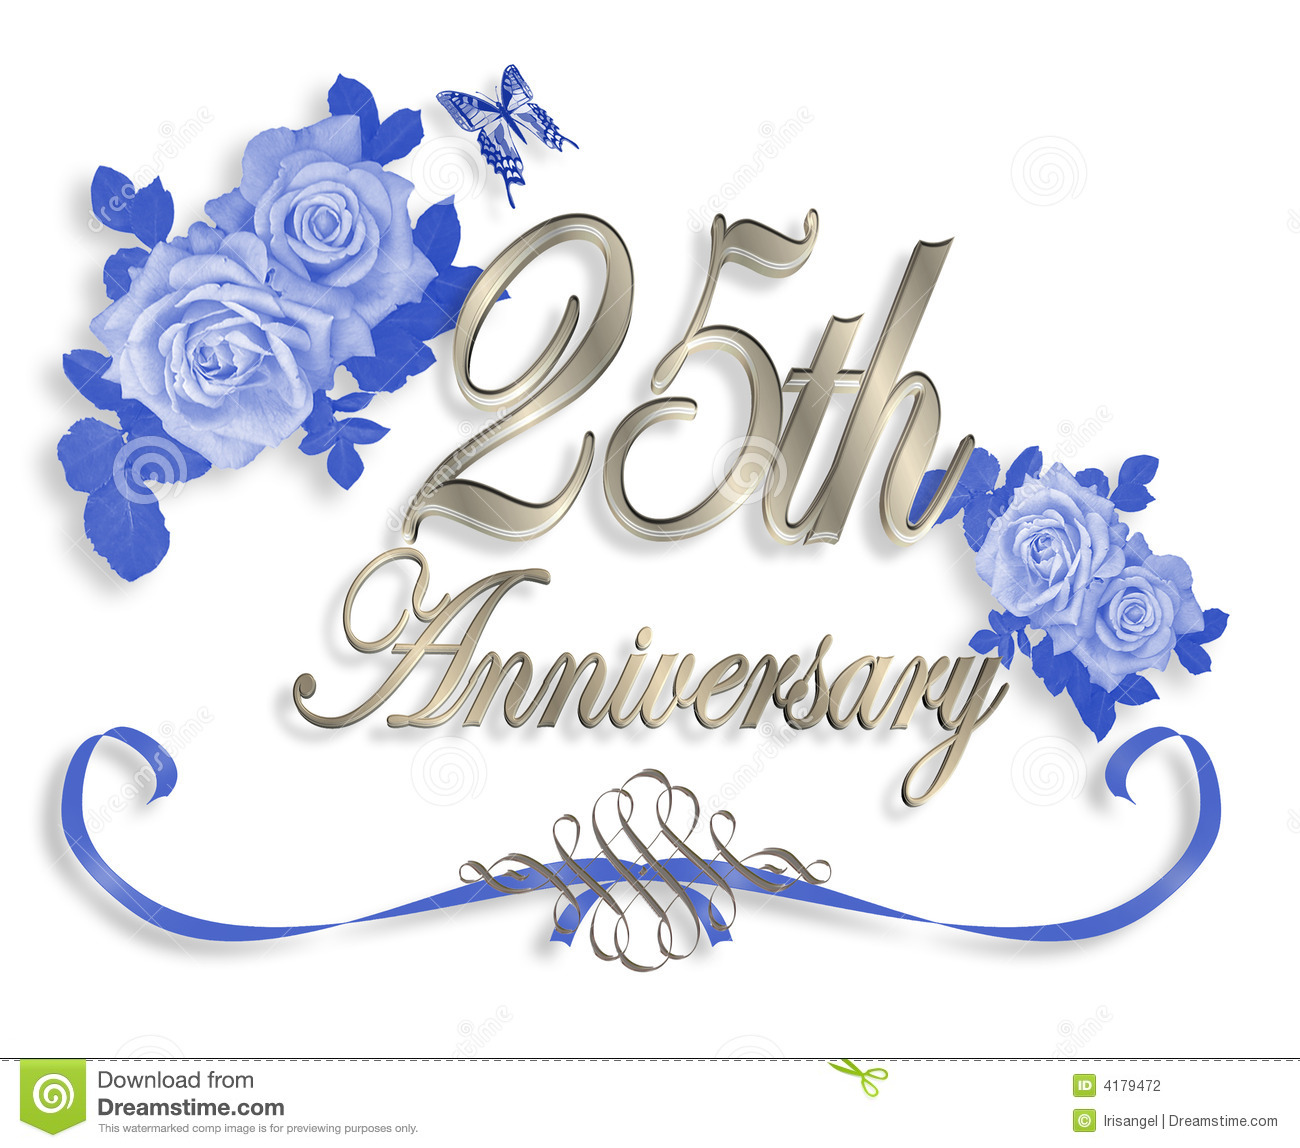 25th wedding anniversary logo clipart jpg freeuse library 25th Anniversary Clipart Group with 54+ items jpg freeuse library